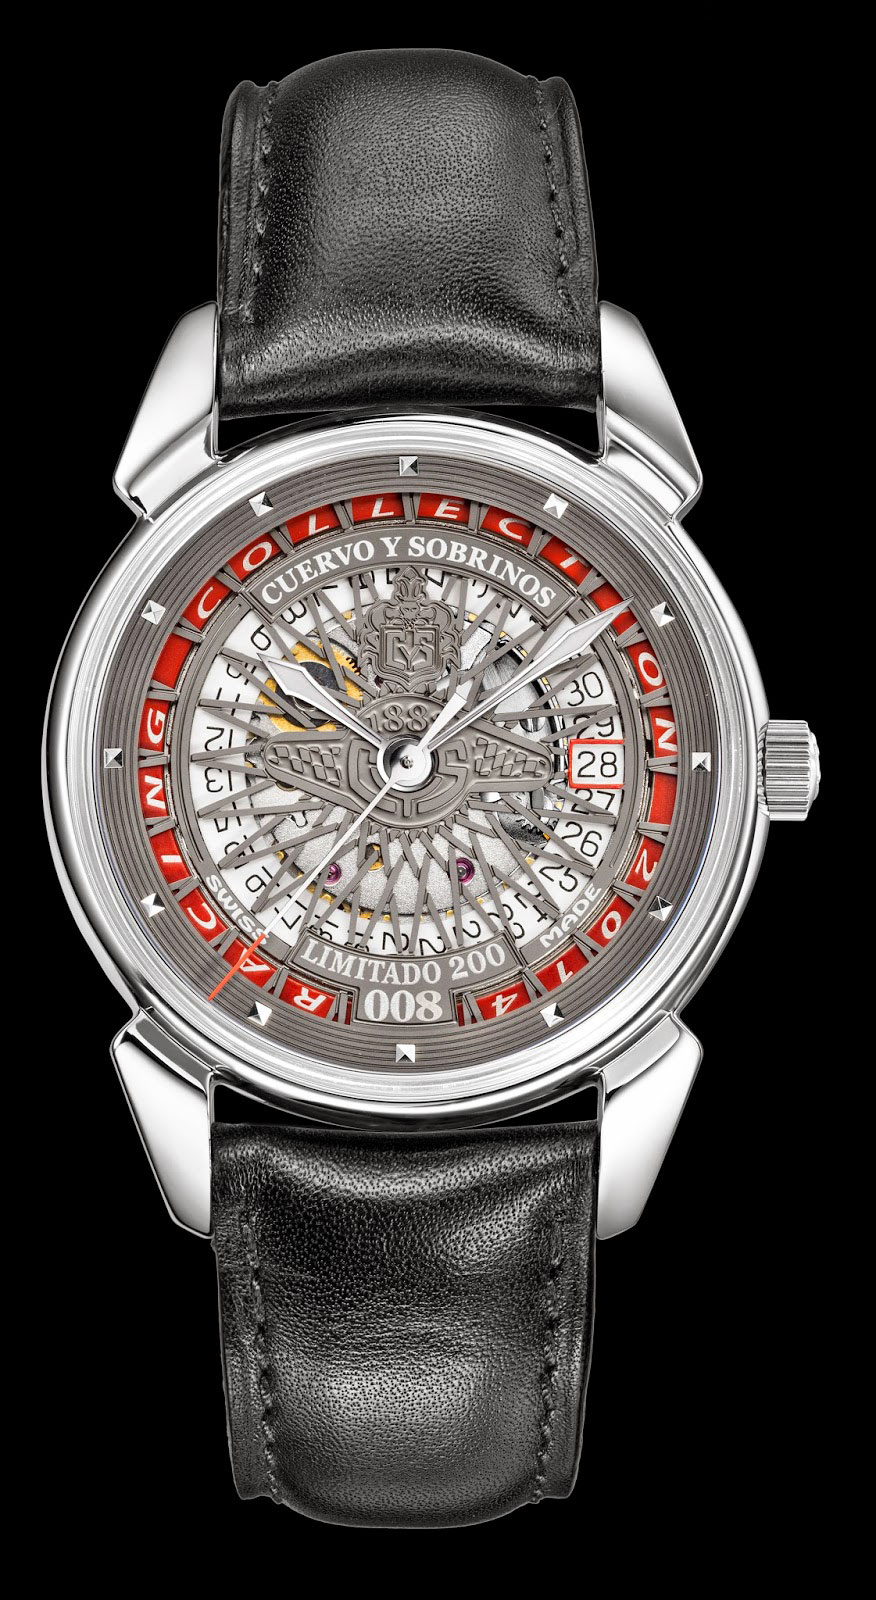 BaselWorld 2014: Historiador Racing от Cuervo y Sobrinos